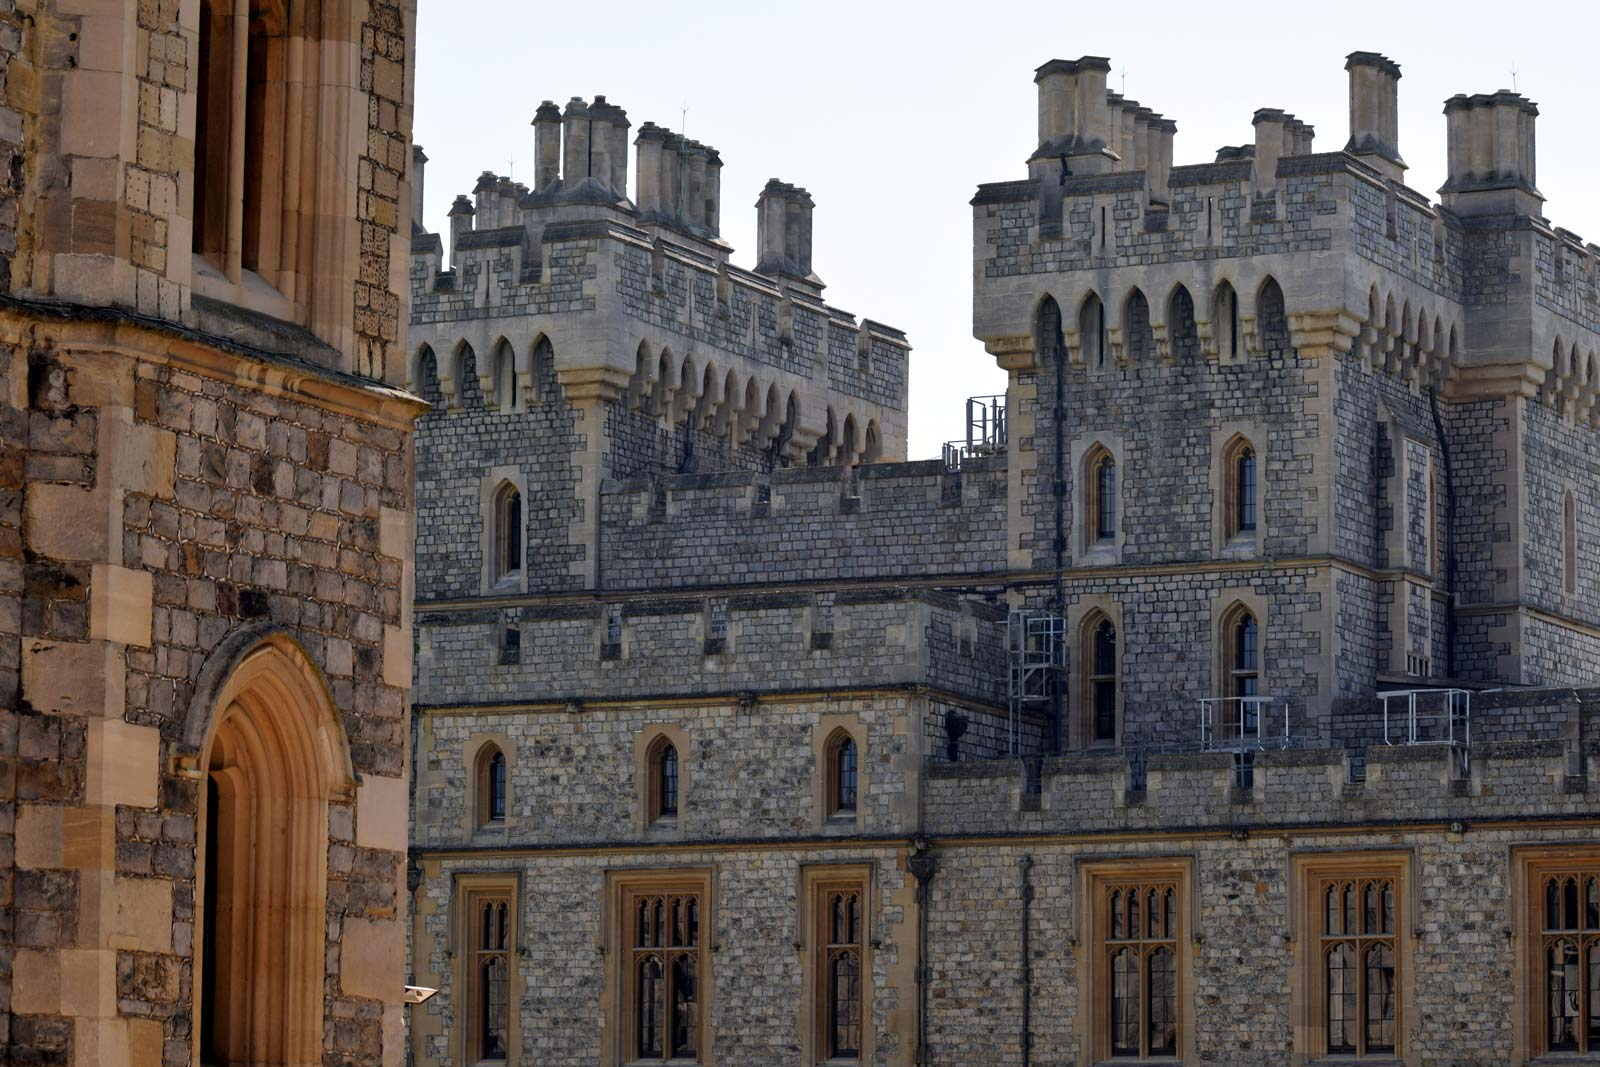 What to see at Windsor Castle